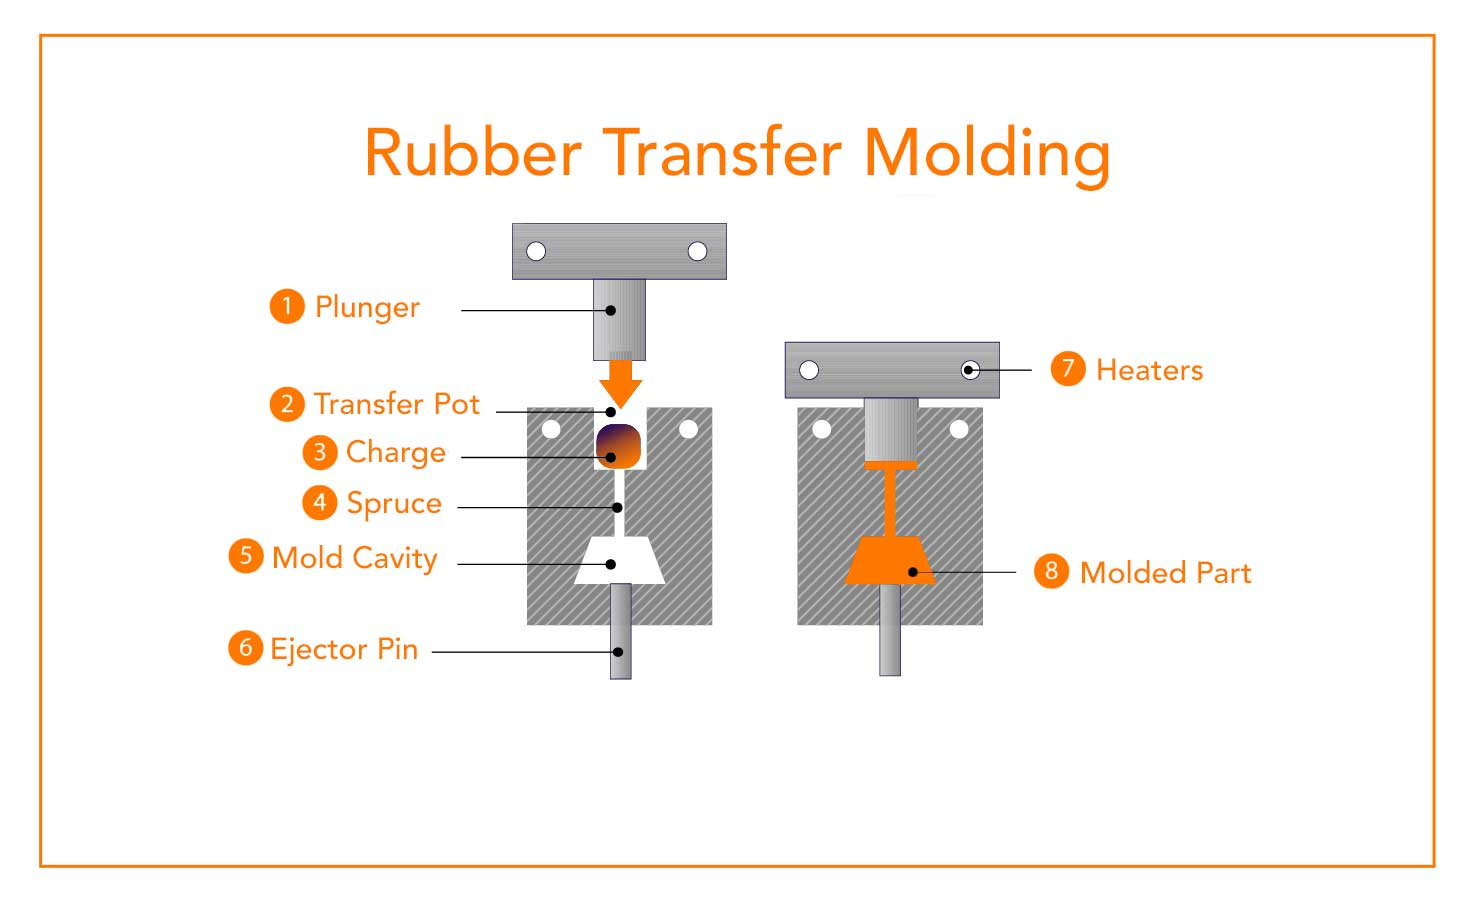 rubber transfer molding process diagram